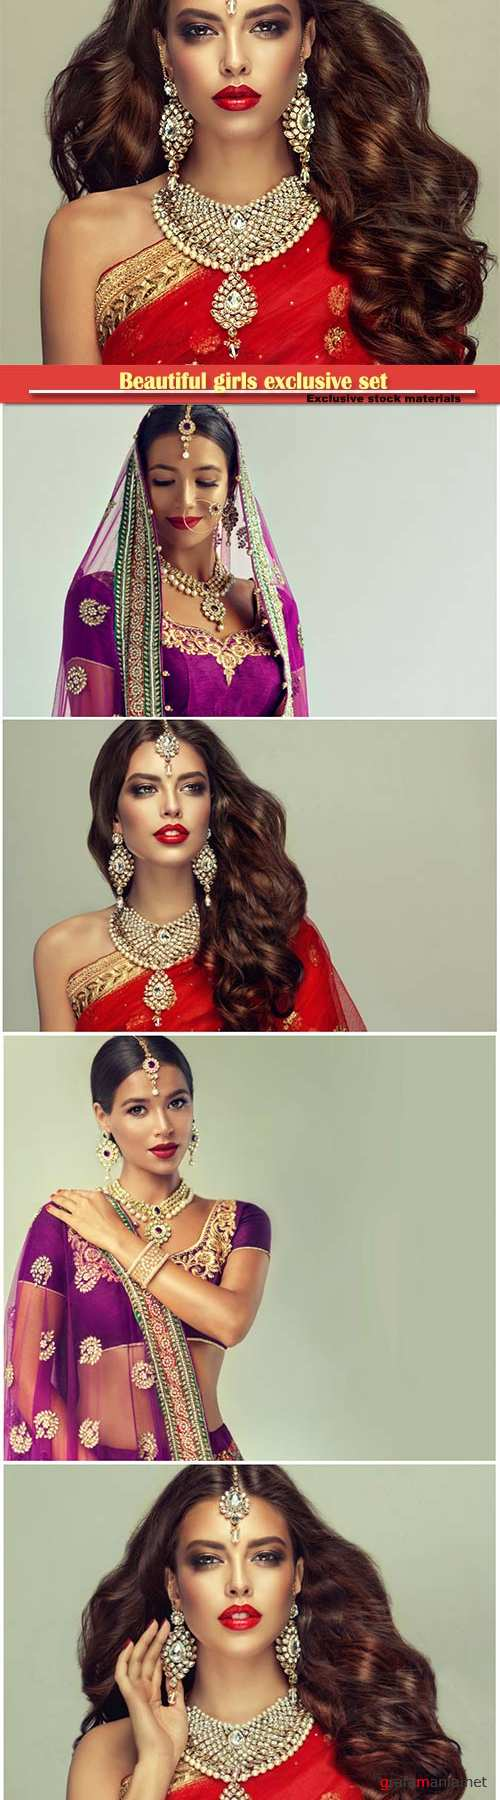 Beautiful Indian girls with precious jewels